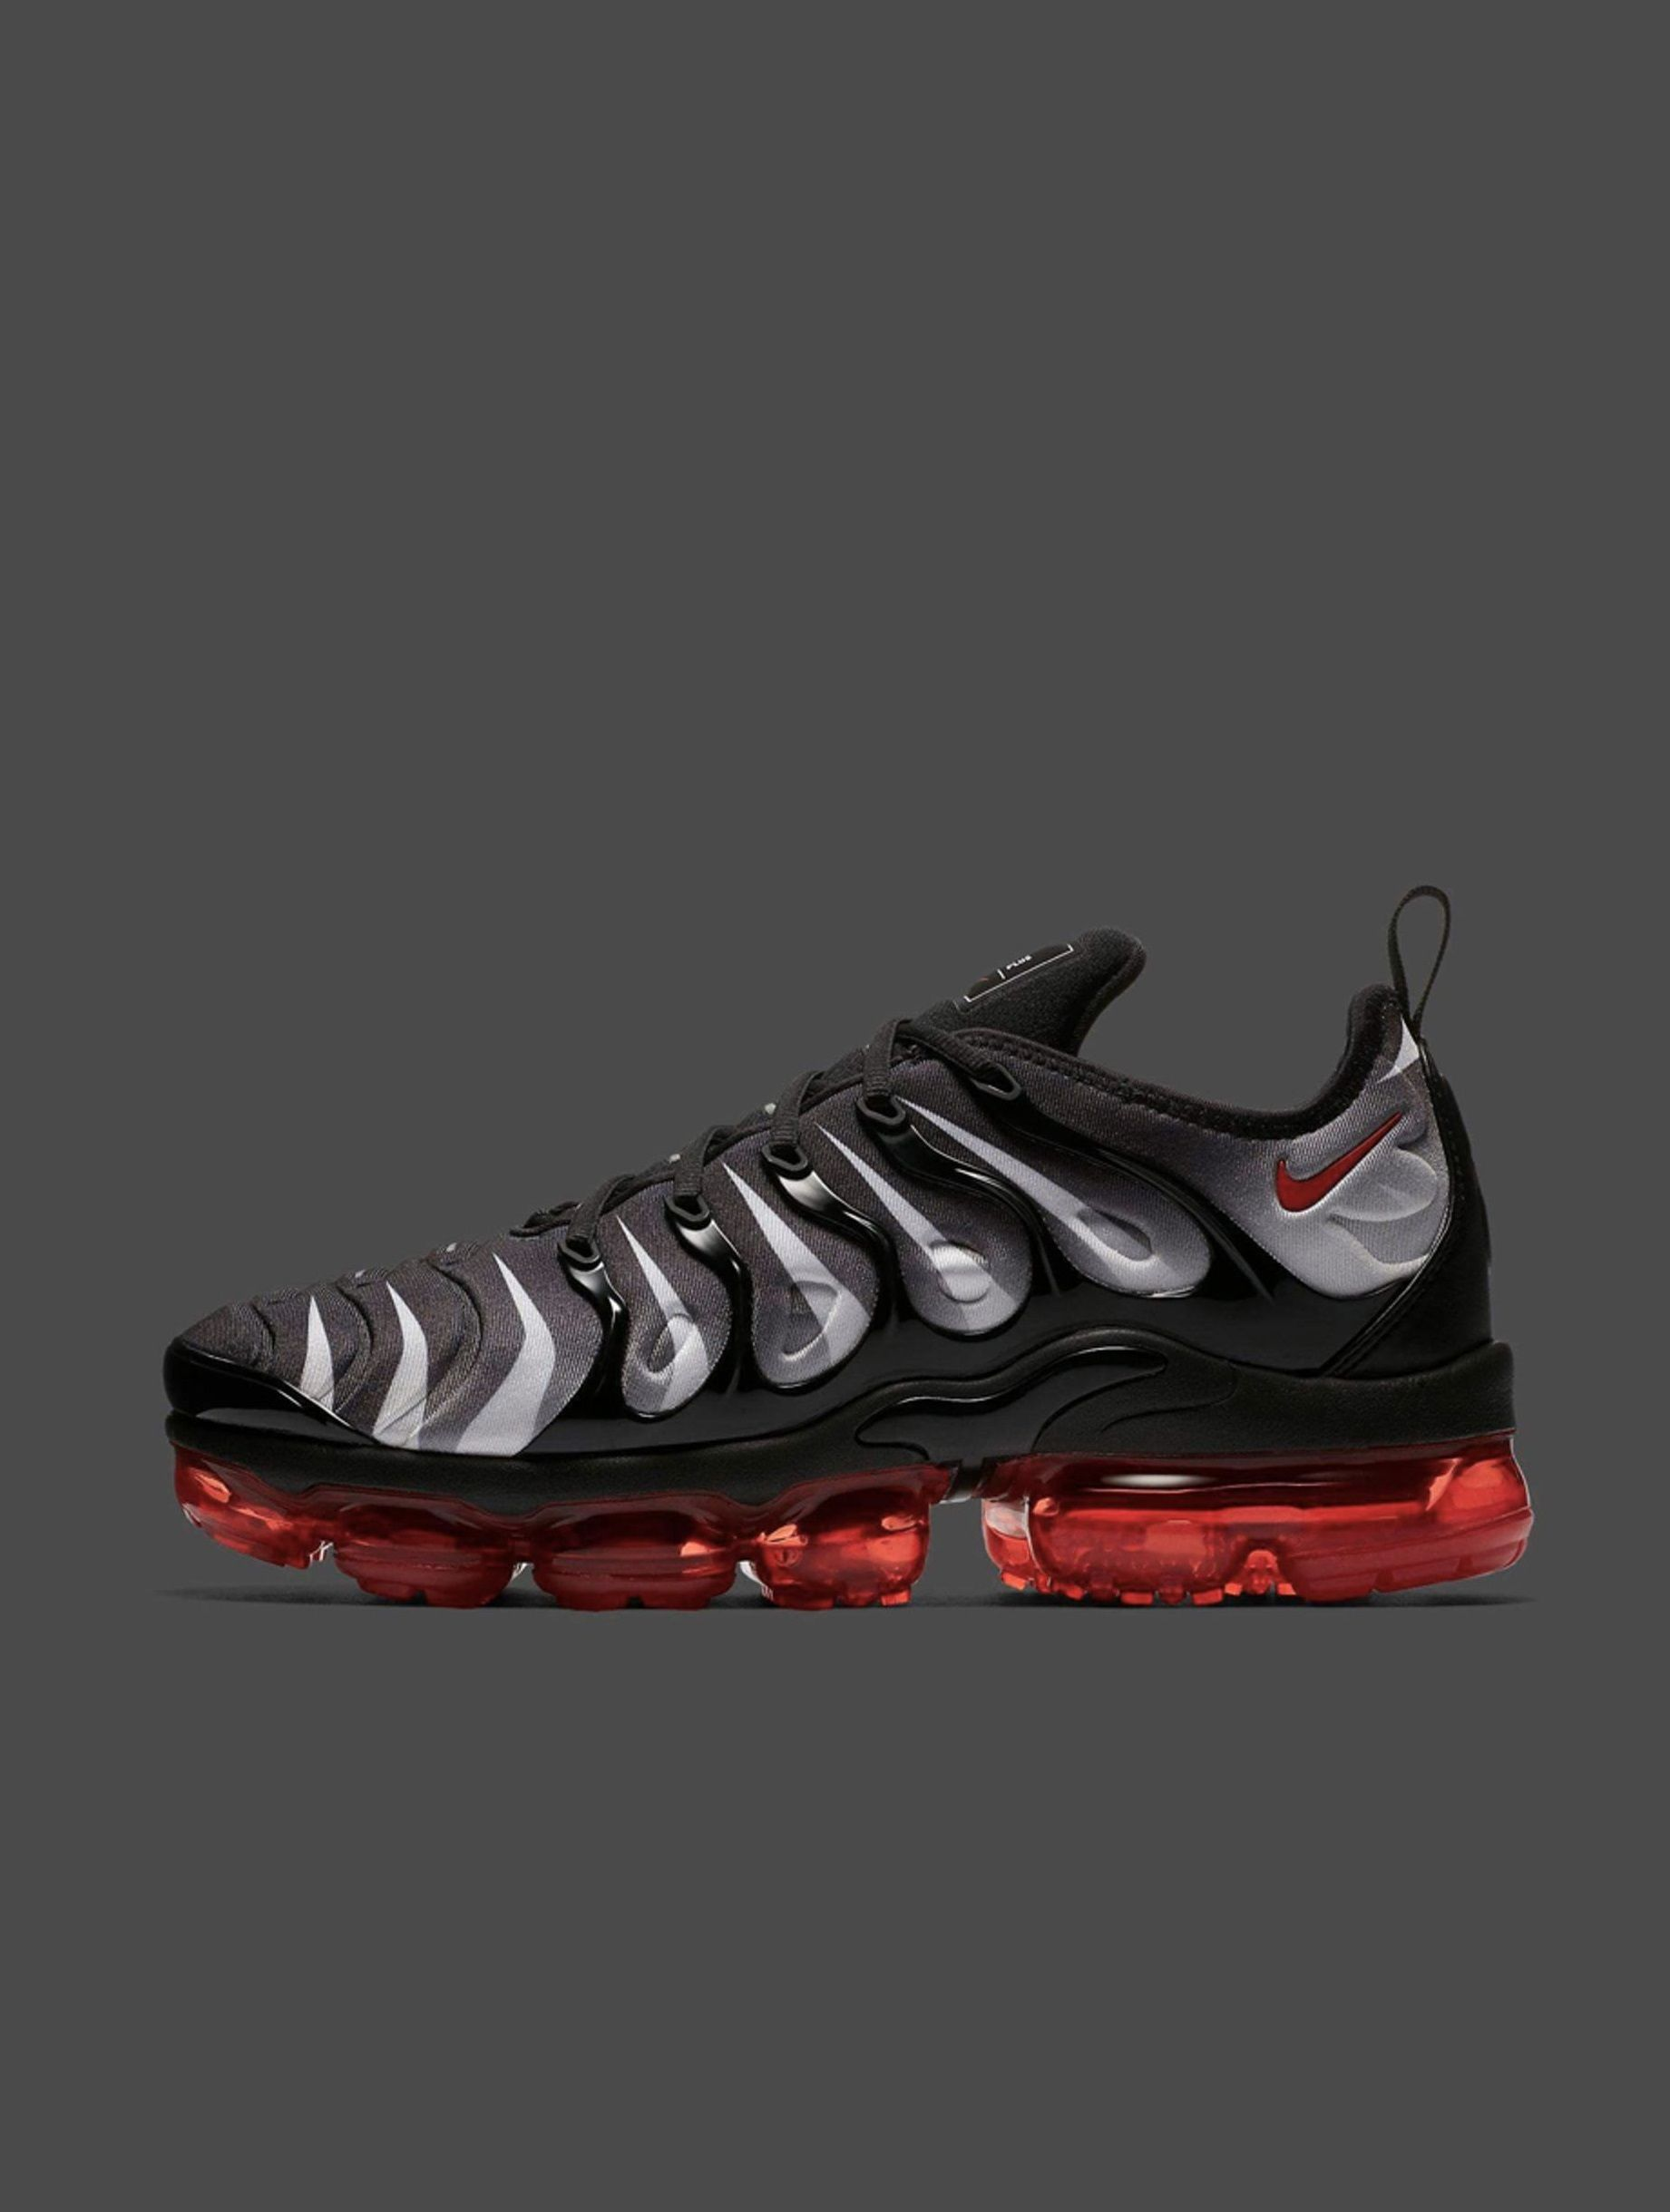 59713bbc268f14 Nike Air Vapormax Plus